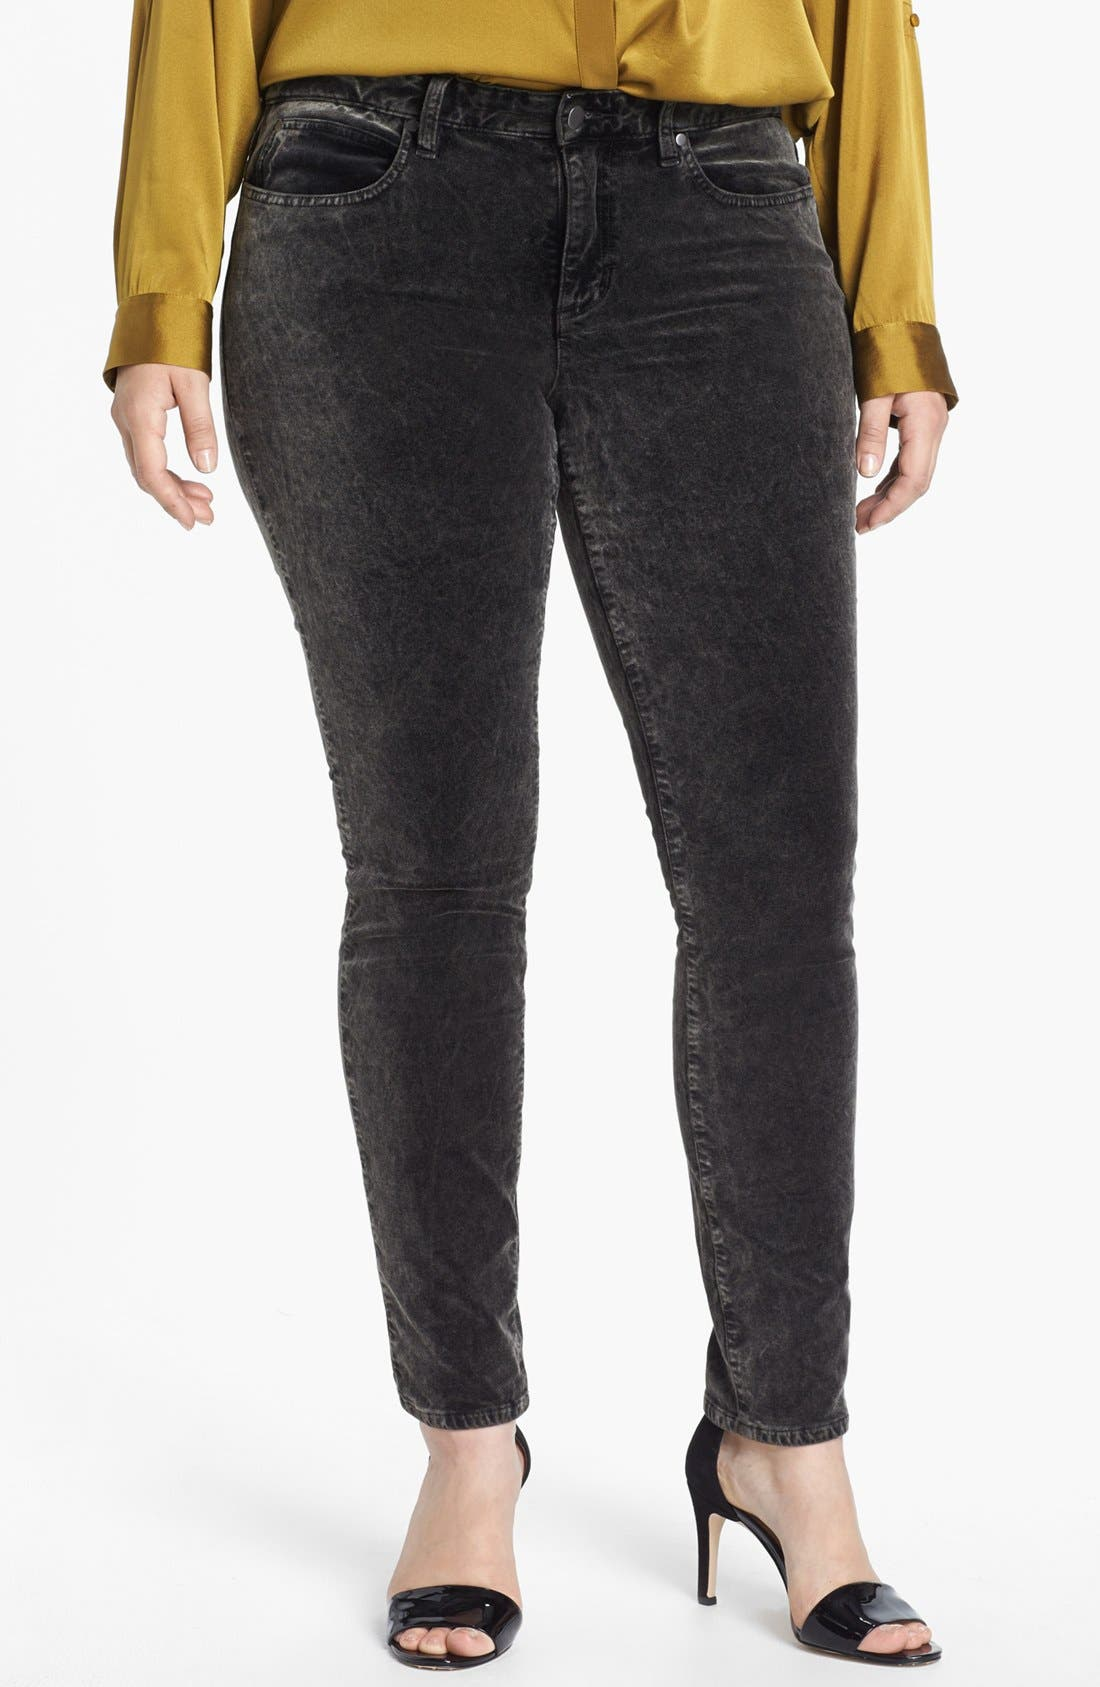 Main Image - Eileen Fisher Velveteen Stretch Jeans (Plus Size)